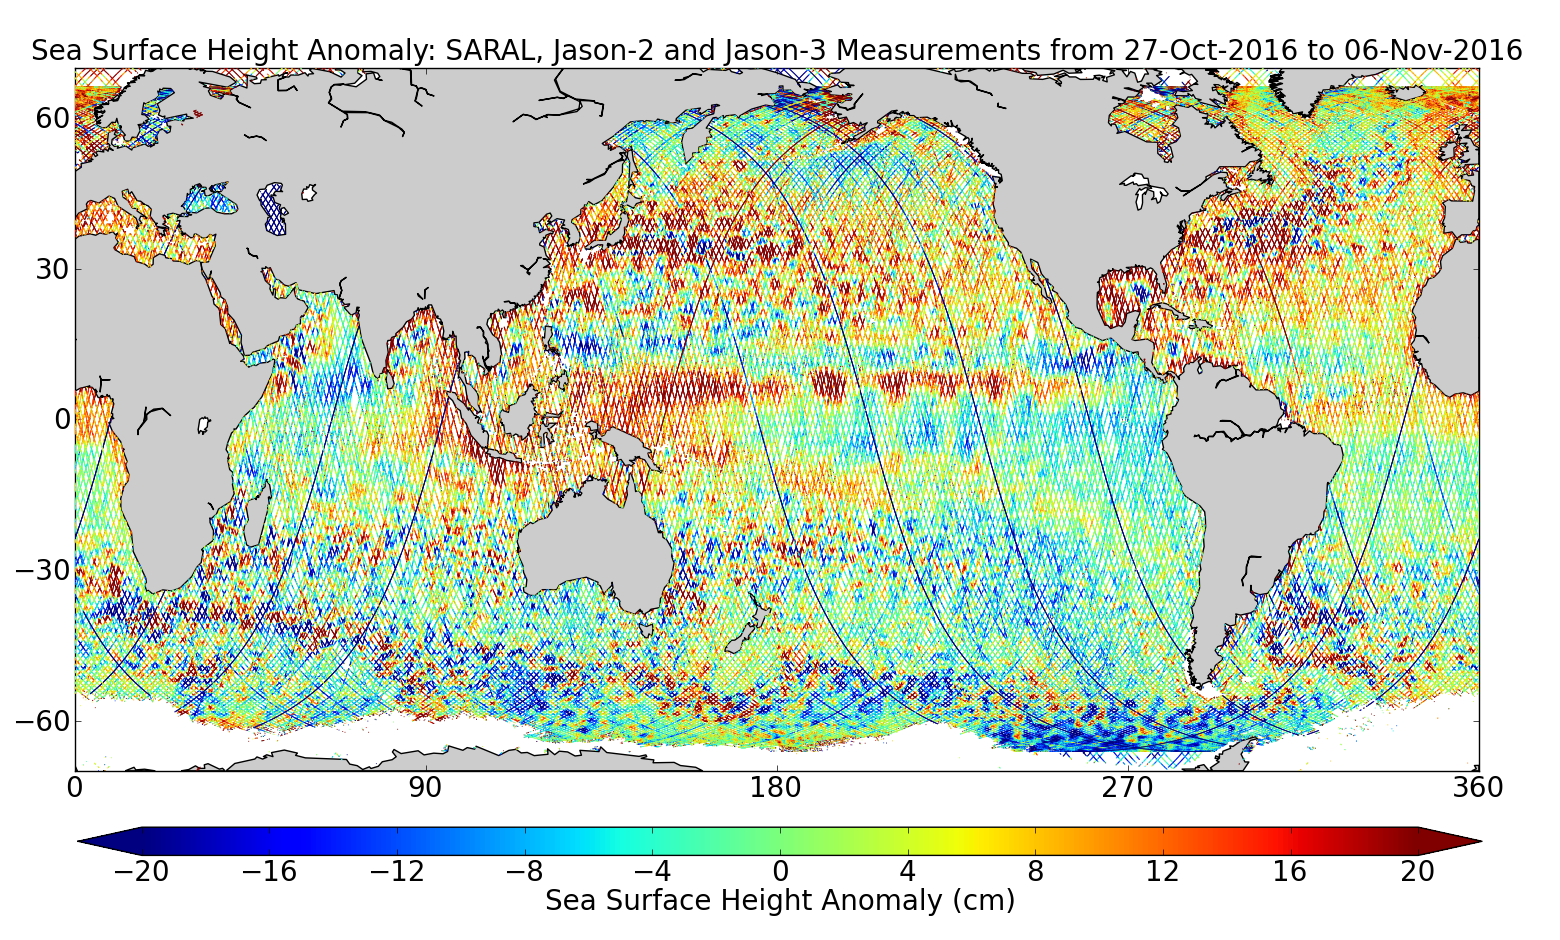 Sea Surface Height Anomaly: SARAL, Jason-2 and Jason-3 Measurements from 27-Oct-2016 to 06-Nov-2016